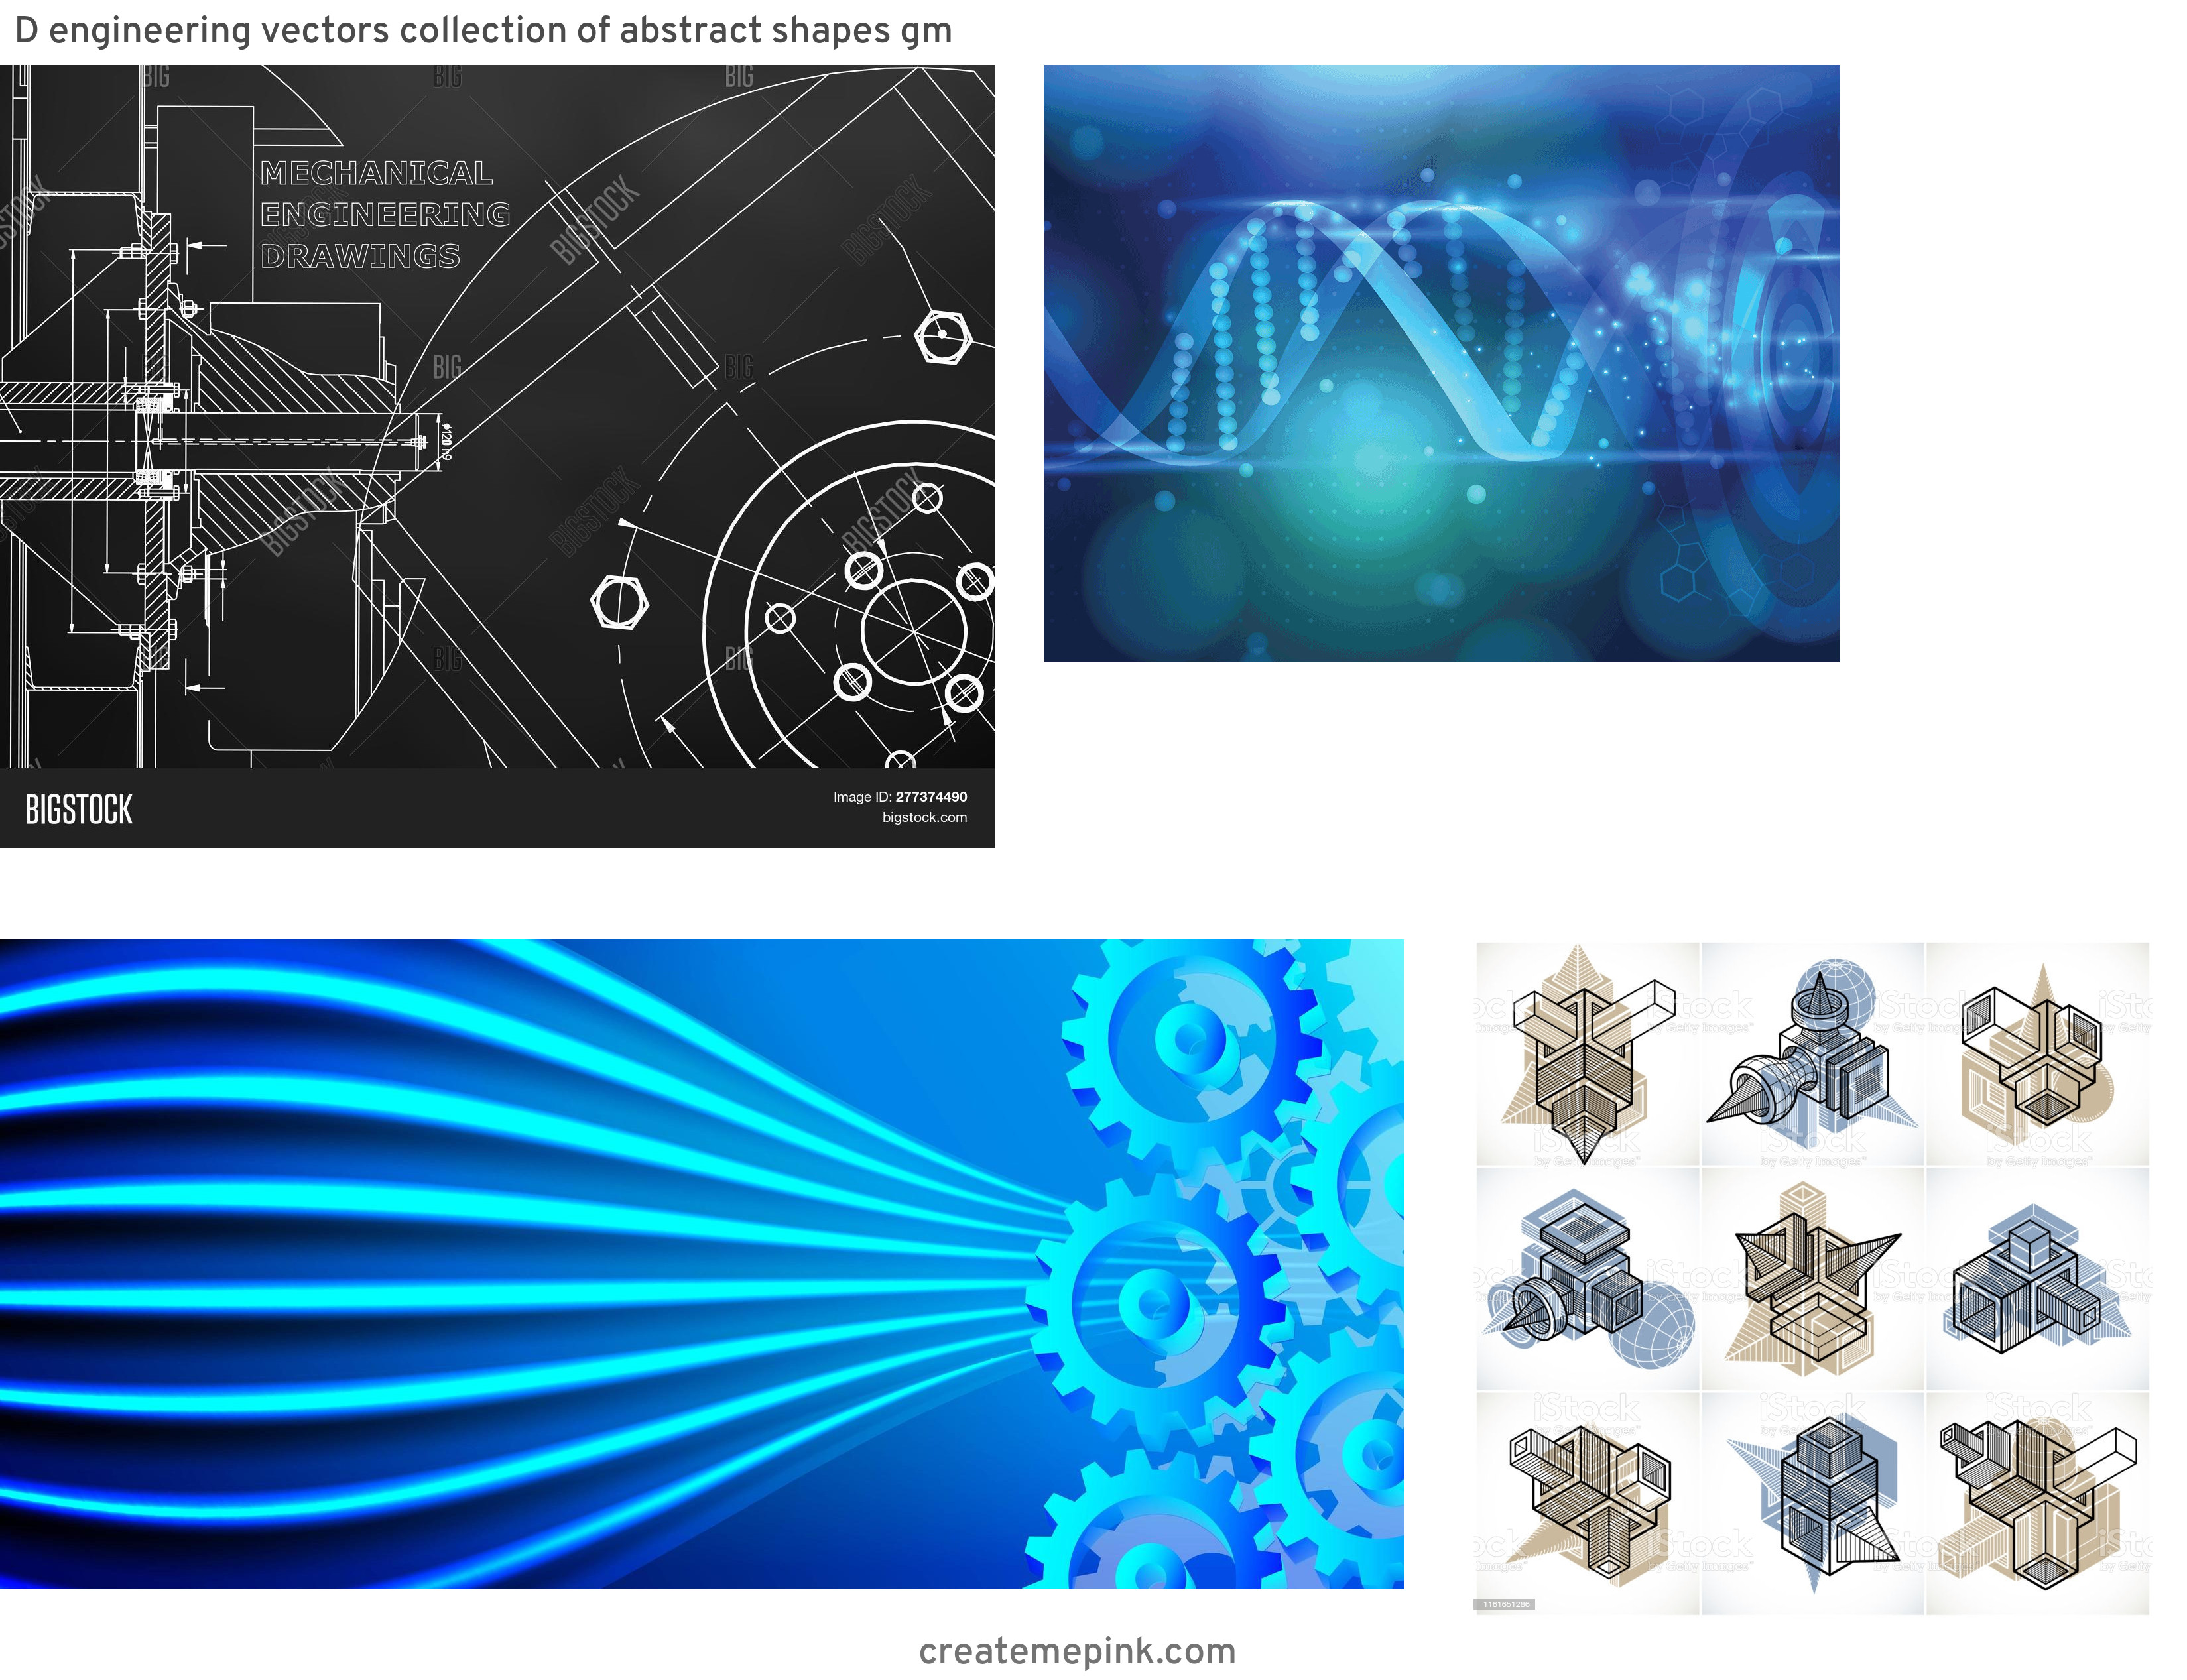 Engineering Vector Pattern: D Engineering Vectors Collection Of Abstract Shapes Gm